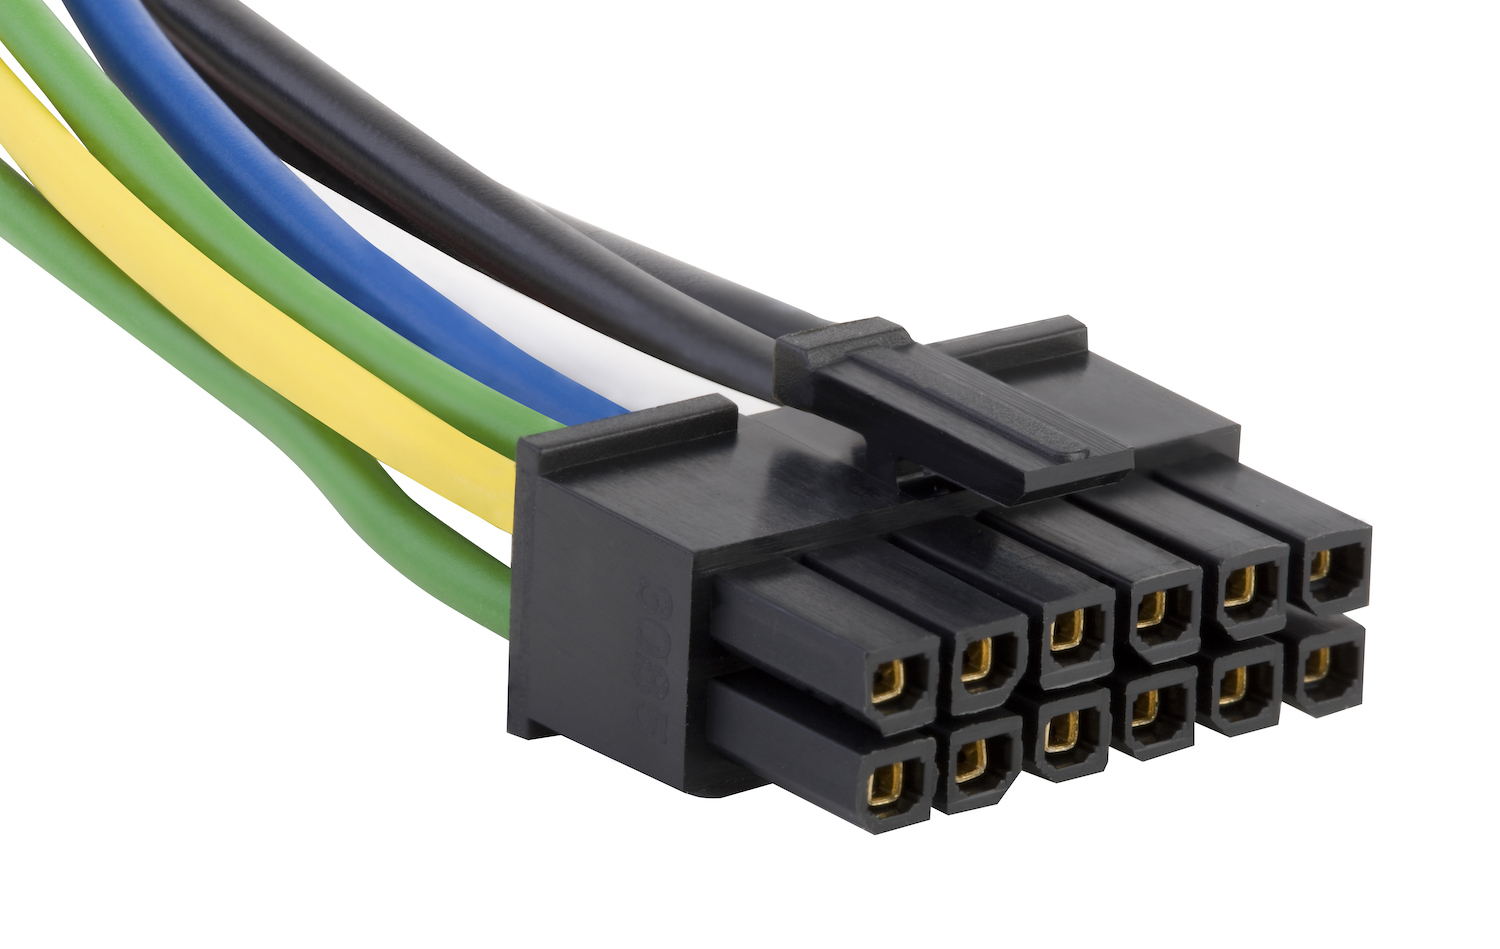 hight resolution of wire to board connector products april 2019 consumer electronics wiring harness connectors